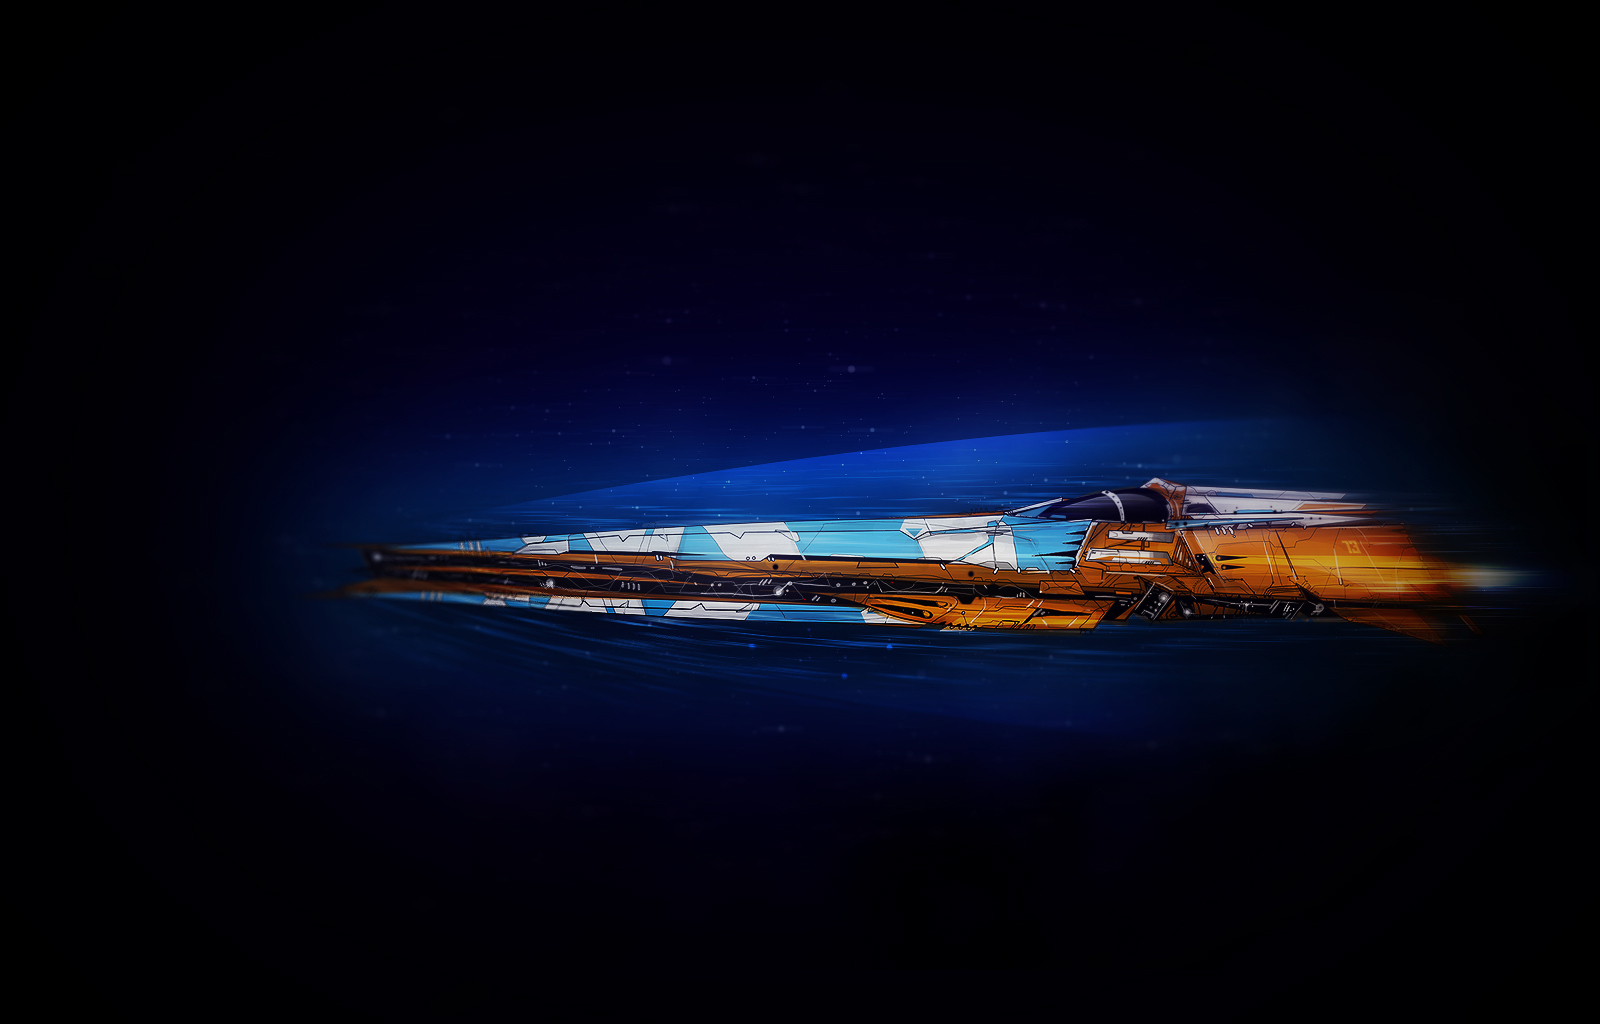 Spaceship wallpaper and background image 1600x1024 id - Wallpaper 1600x1024 ...